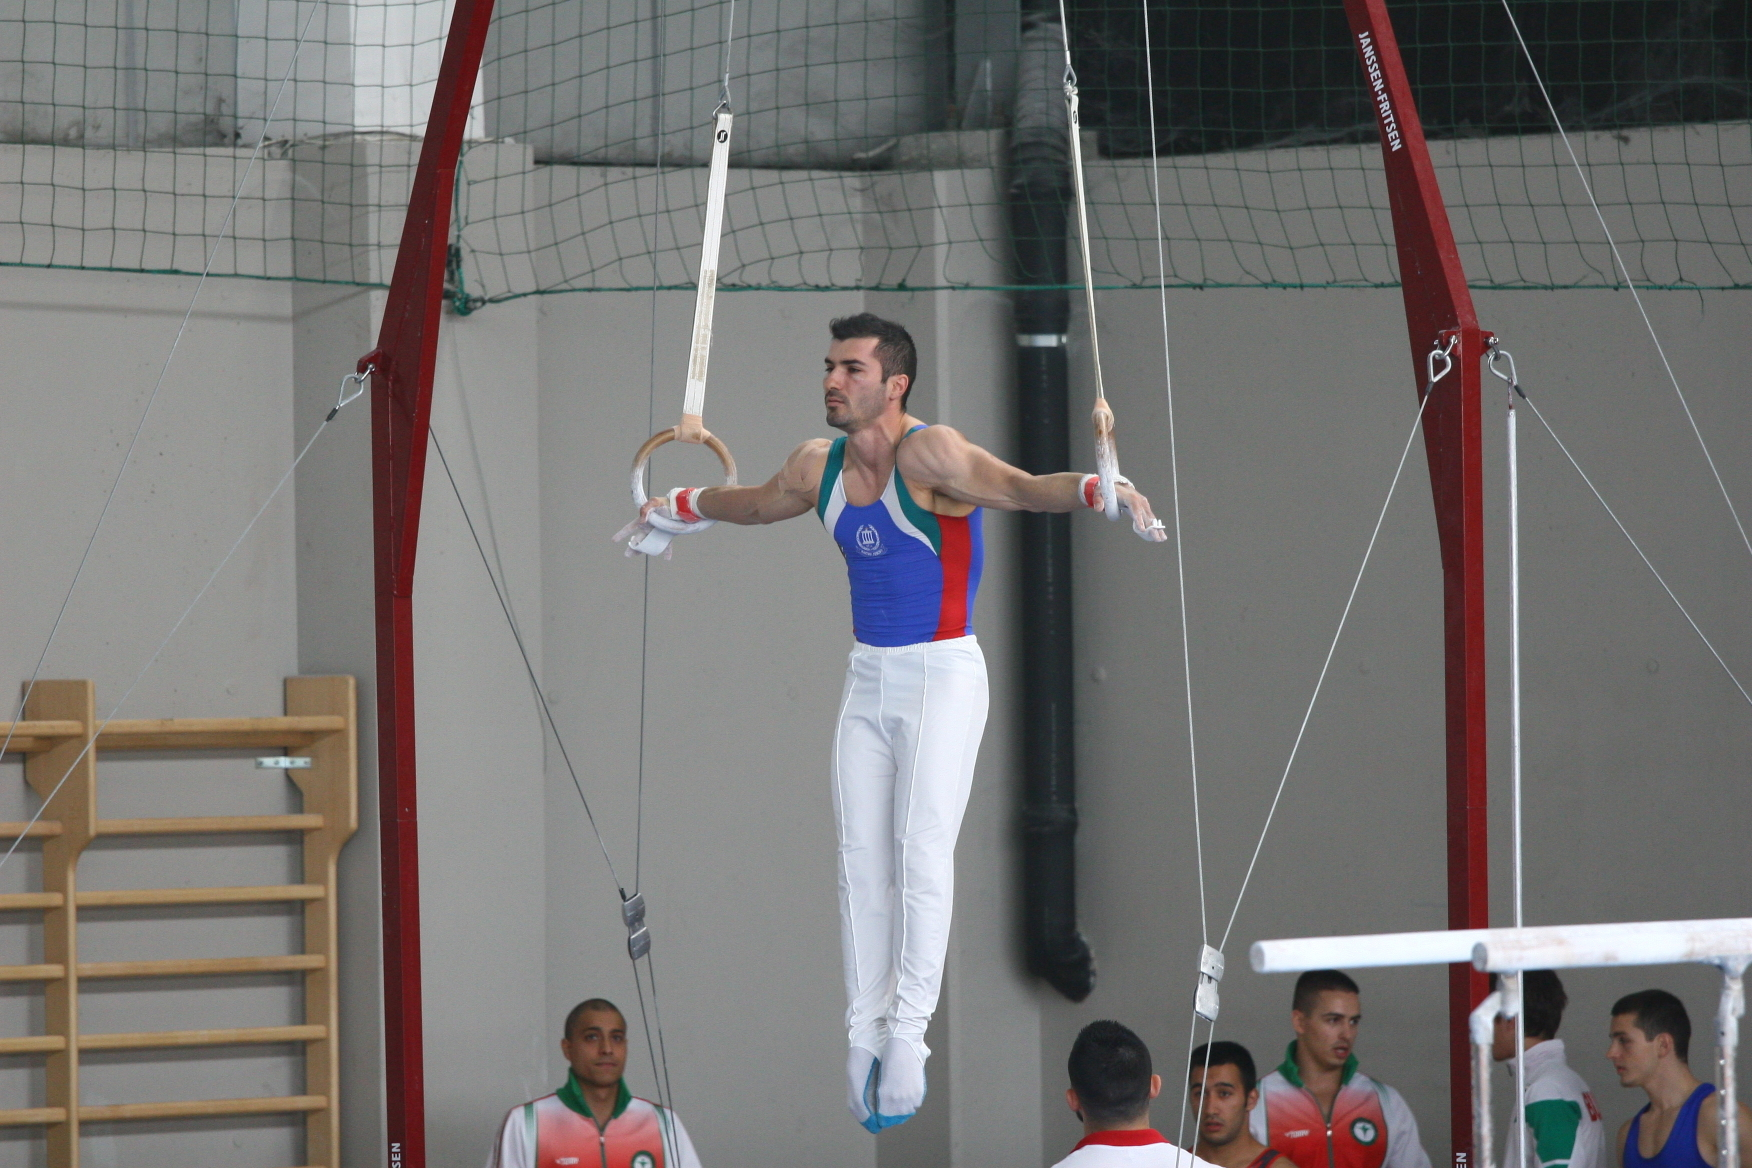 Stefan Kolimechkov Performing the Iron Cross on Rings